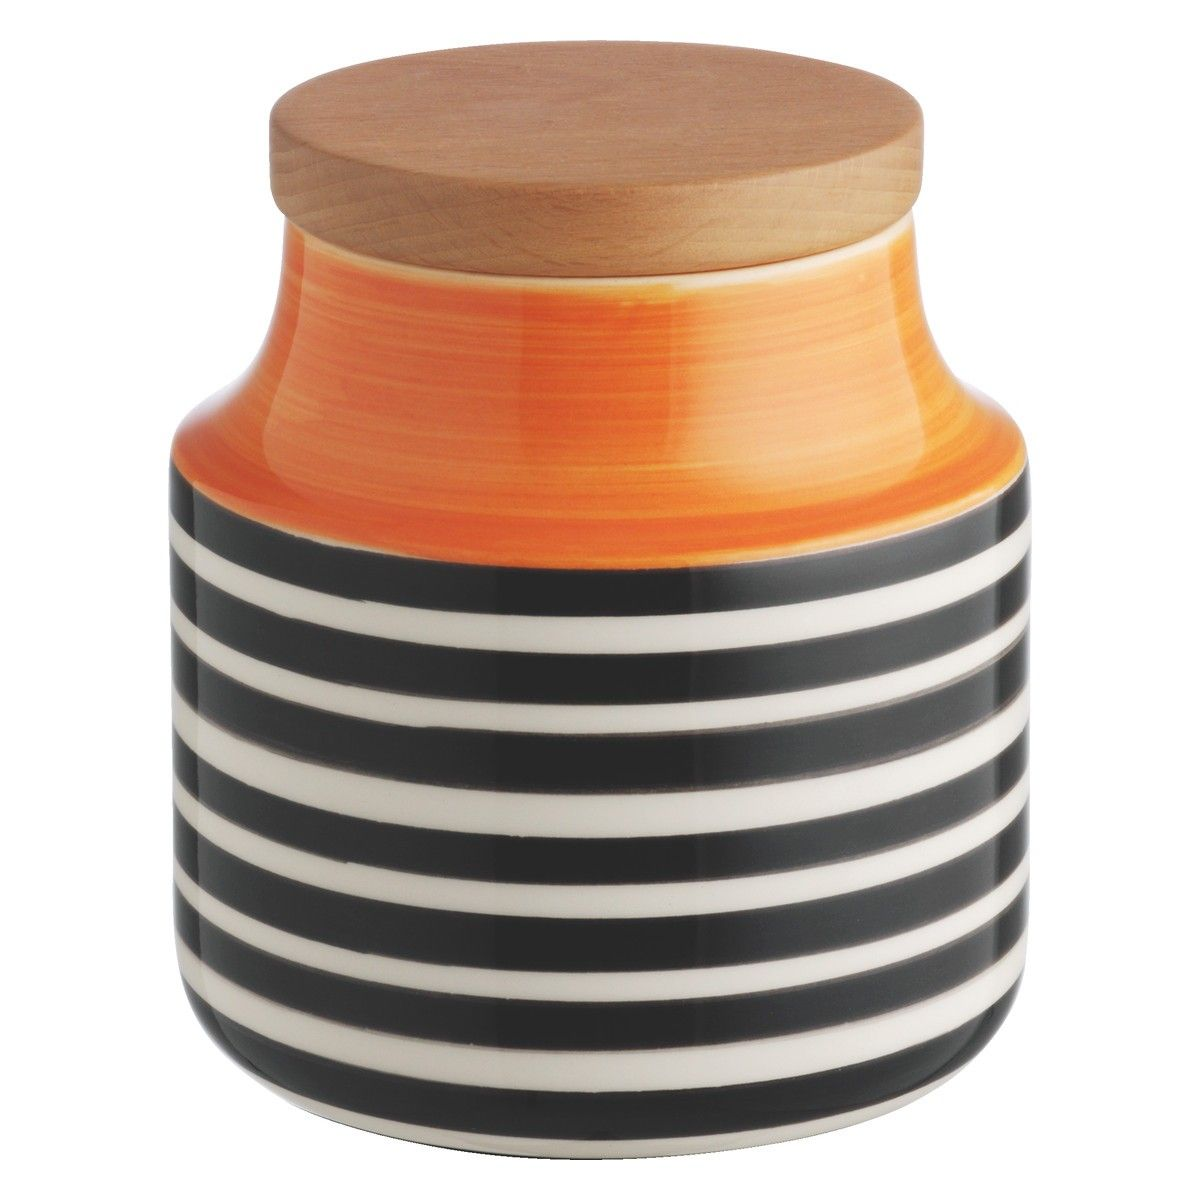 The Tira Small Orange Storage Jar Is A Fabulous Addition To Any Kitchen And Habitat Exclusive Now At Uk